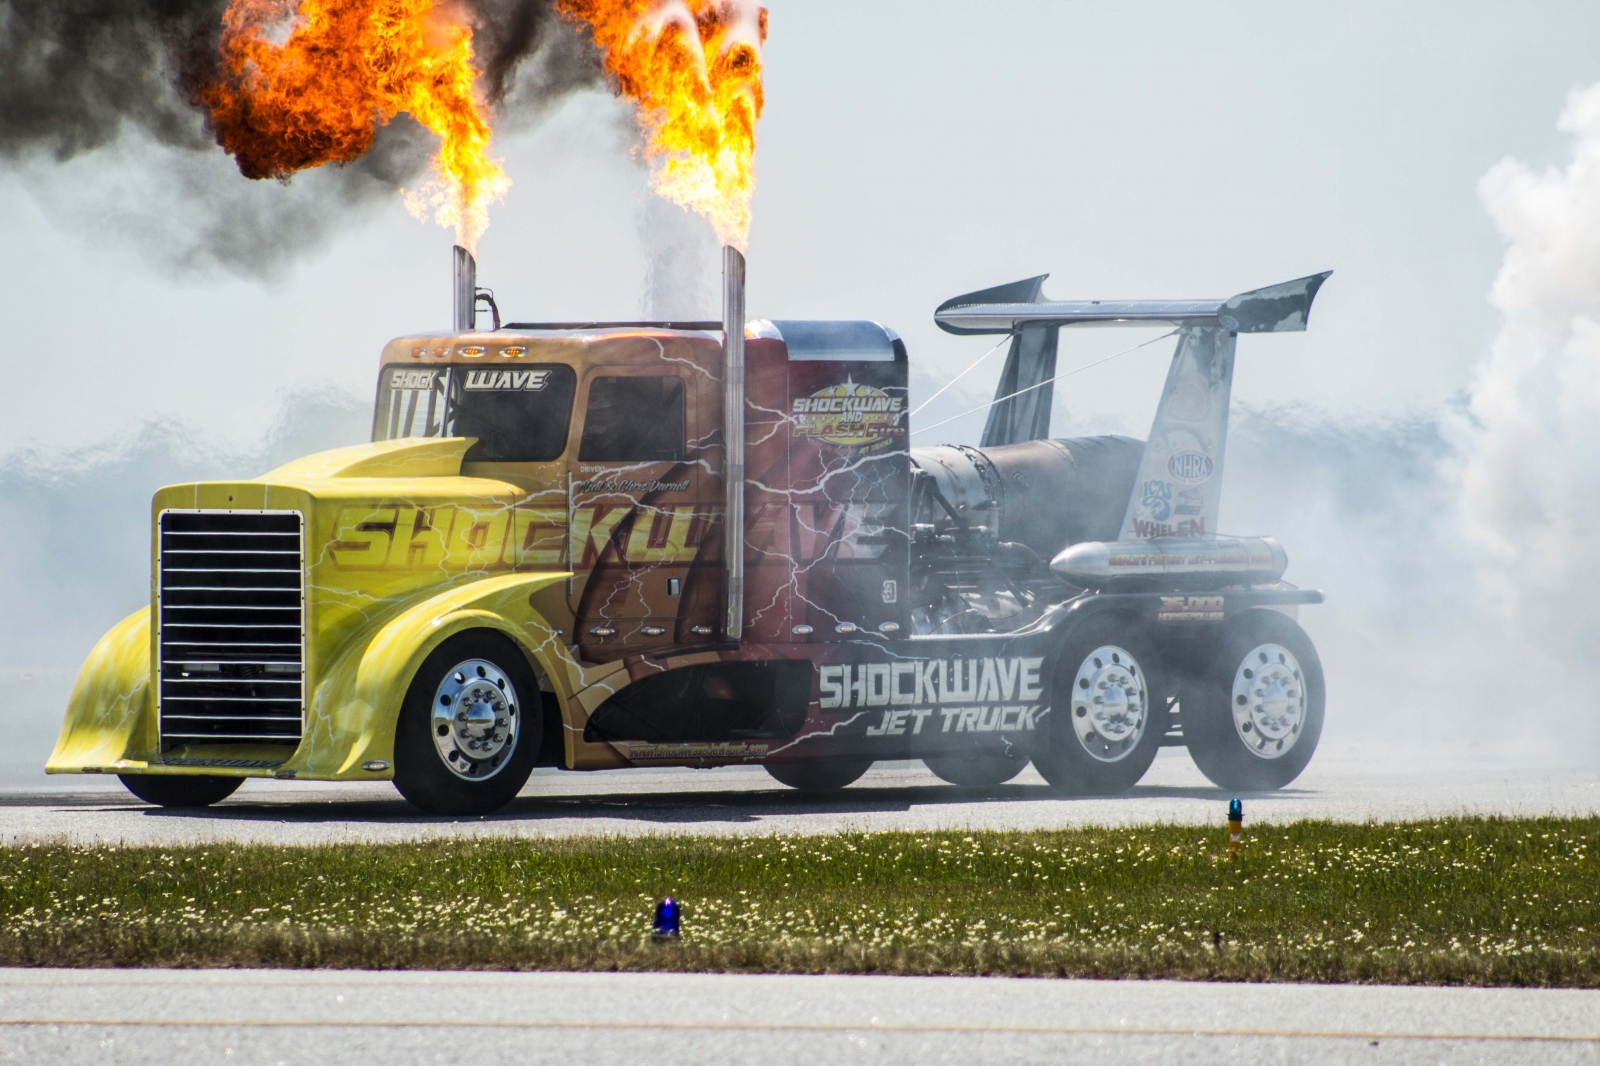 Shockwave the Jet Truck